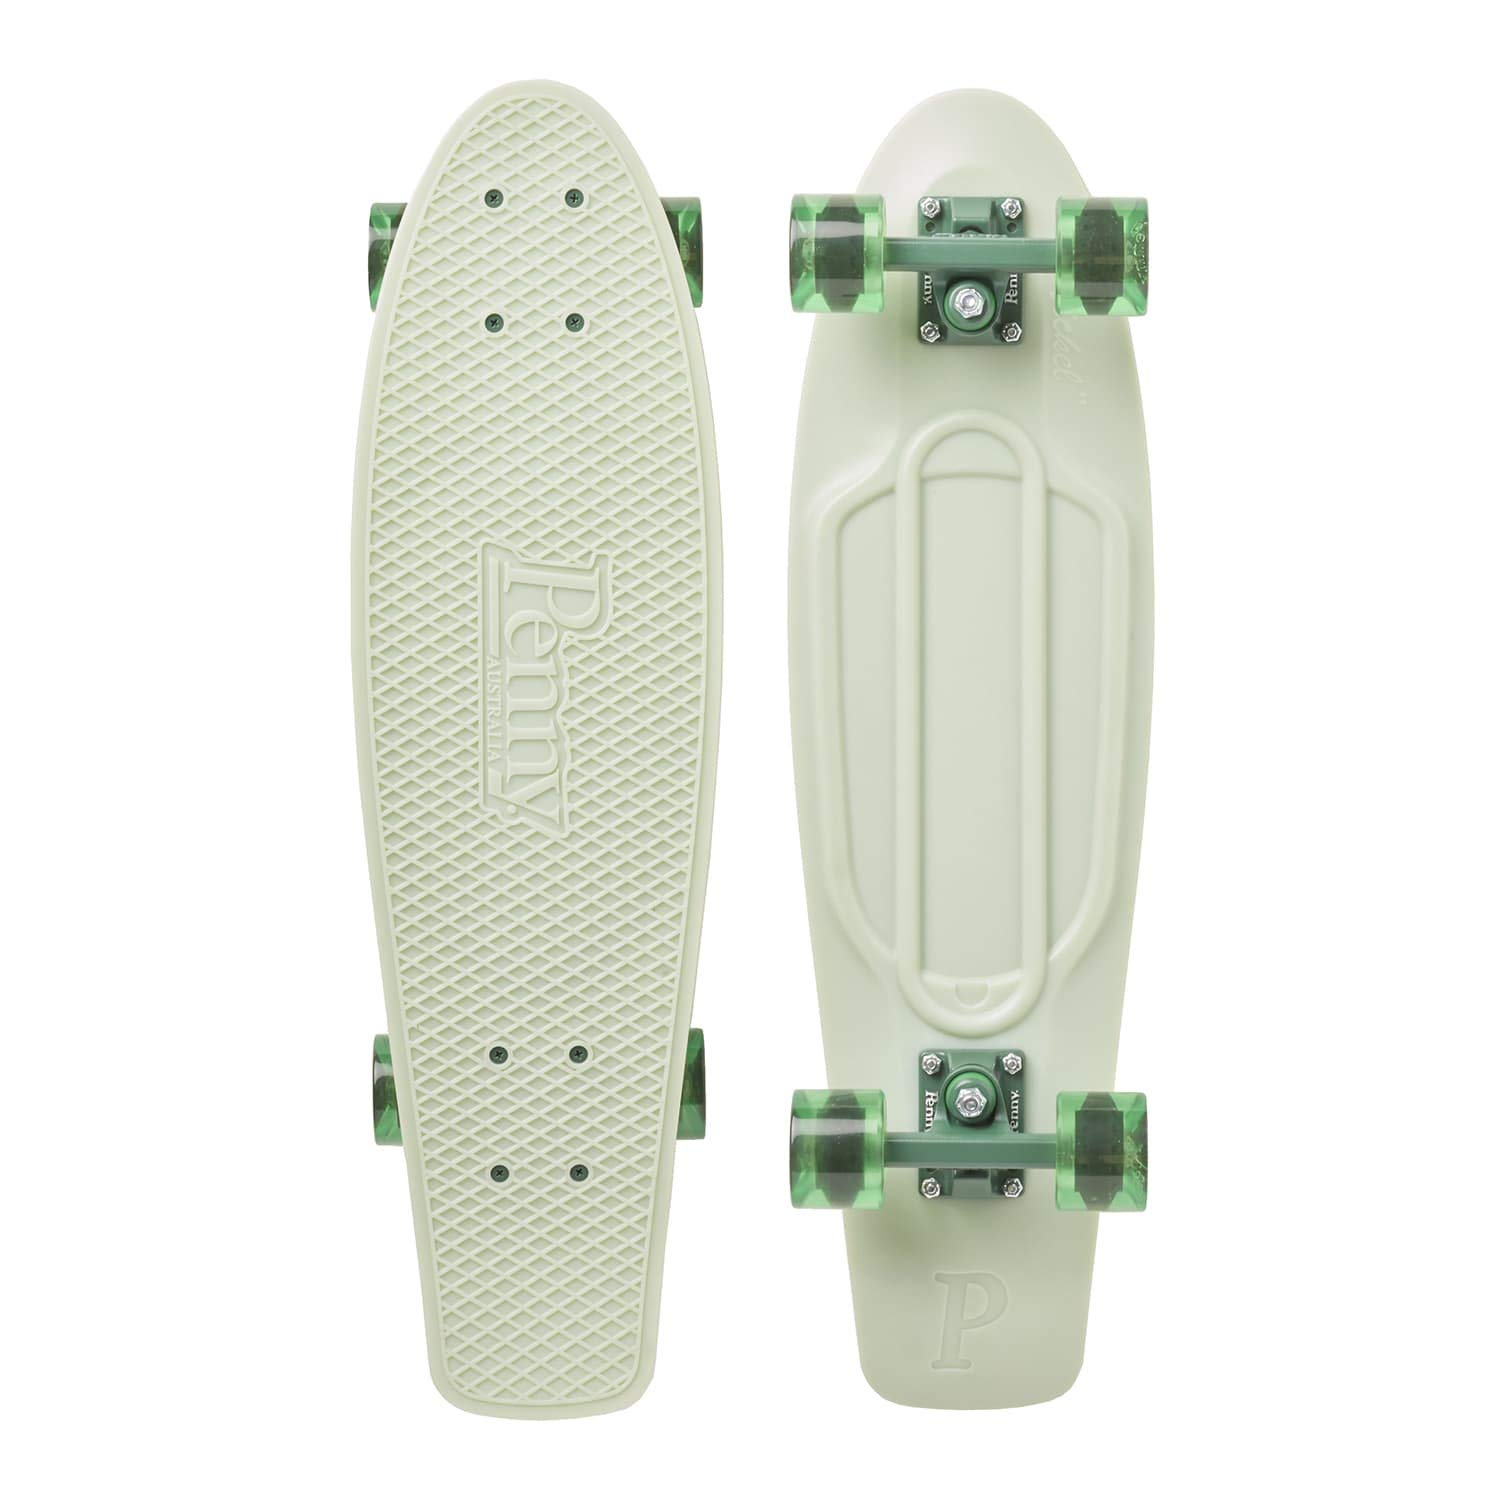 Penny Australia Penny Skateboards 27 Inch Complete Caps